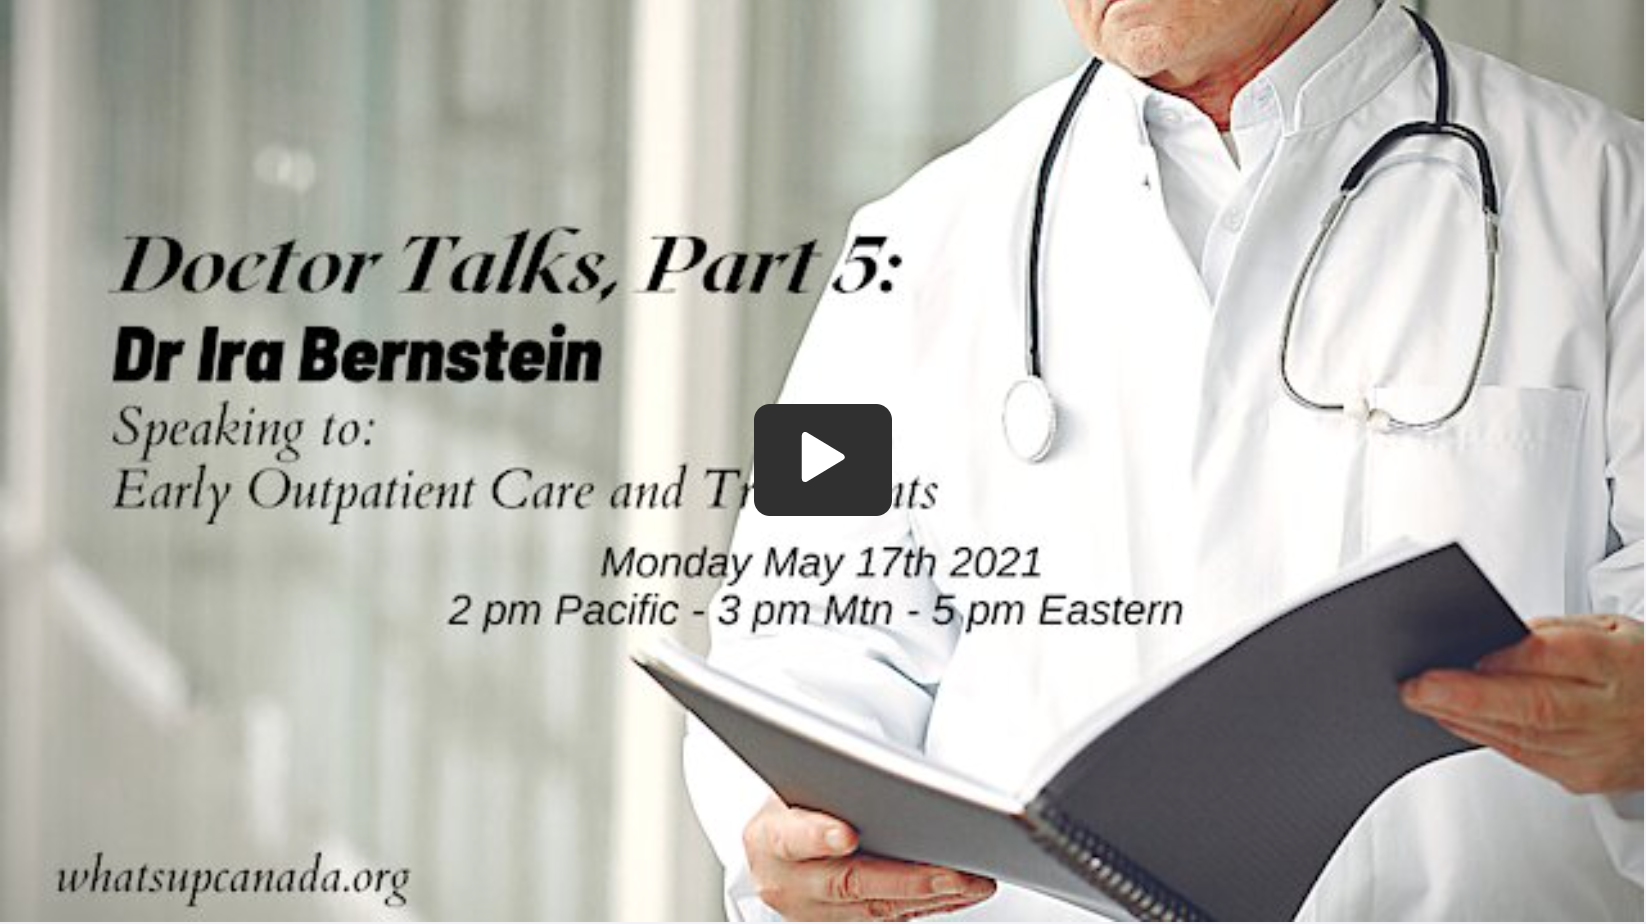 Treating patients with Vit D and Early Treatment